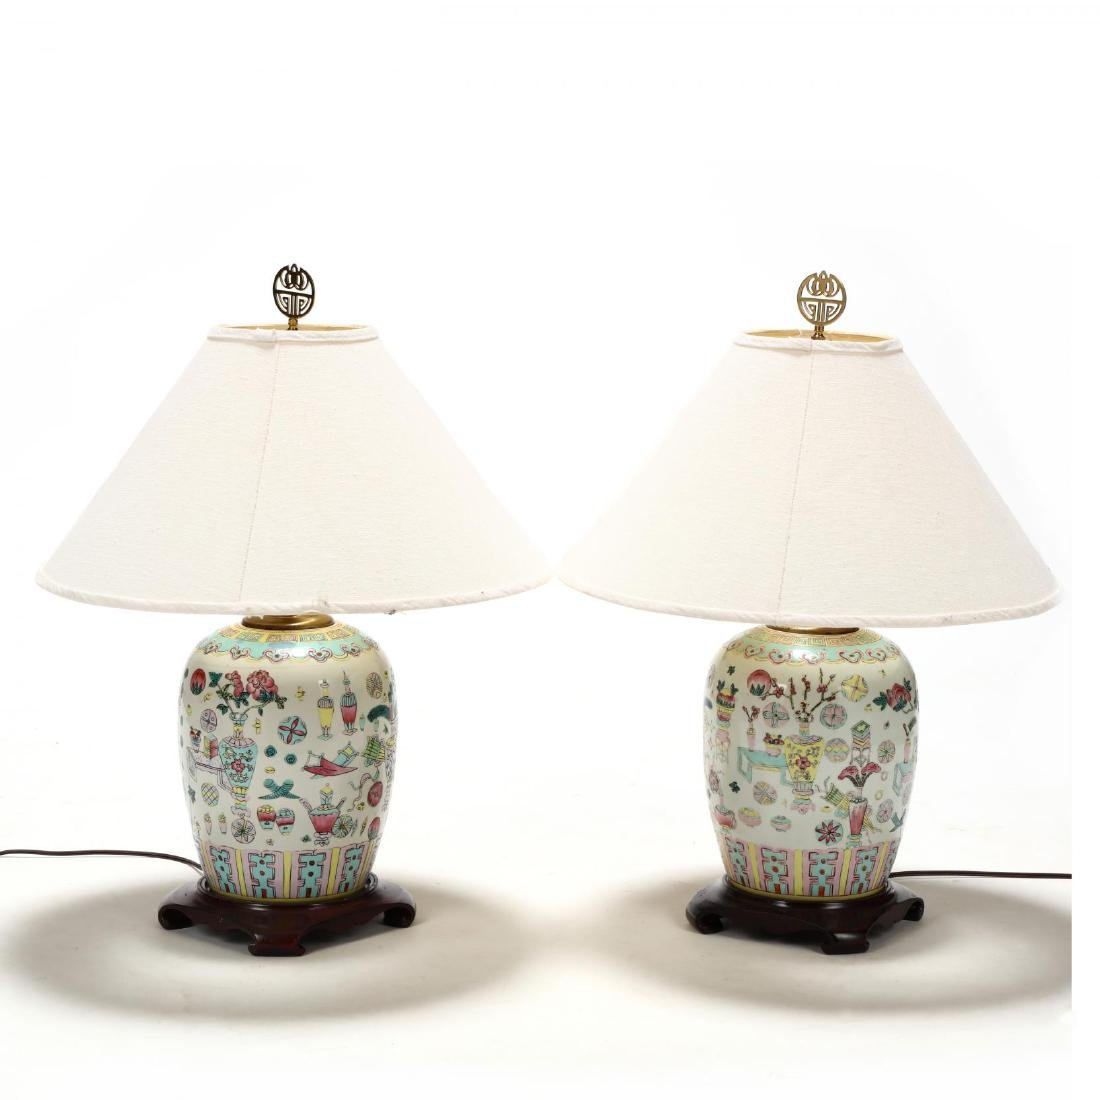 A Pair of Chinese Lamps with One Hundred Antiques Motif - 3